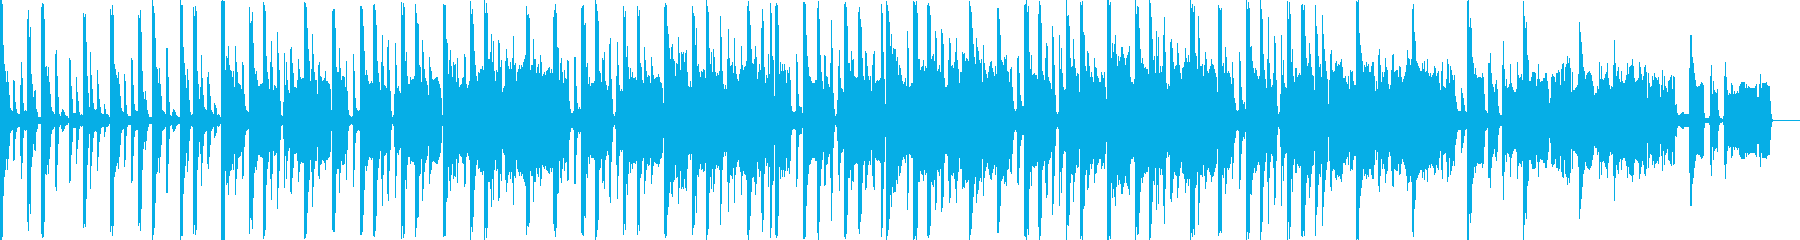 Songs for electric jingles's reproduced waveform